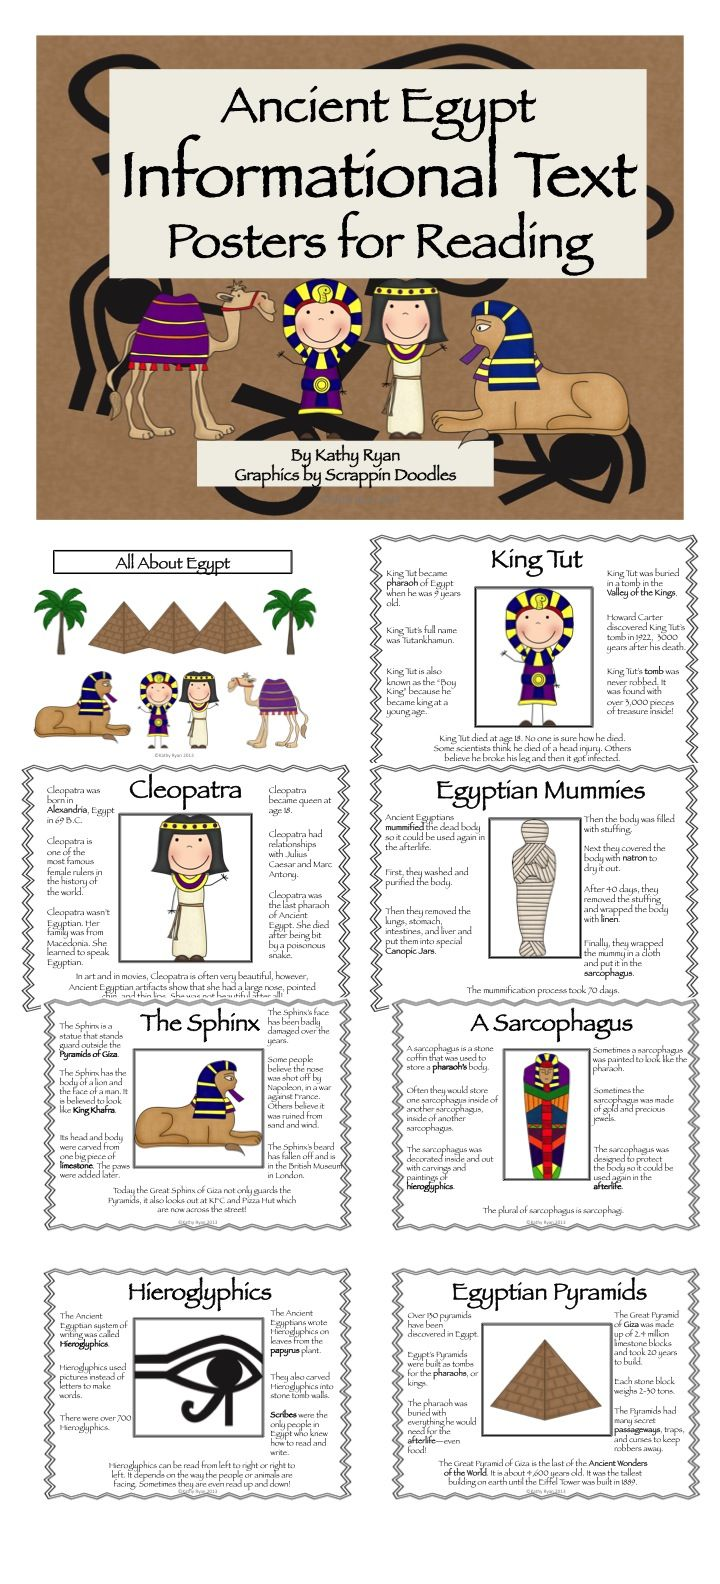 This series of 11 Informational Text Posters written in simple language will help your students learn basic facts about various topics of Ancient Egyptian history. Key vocabulary is highlighted in bold text, so students can identify the content words.    Topics include:    King Tut  Cleopatra  Egyptian Pyramids  The Great Sphinx  Hieroglyphics  Mummies  Sarcophagus  Camels  Ancient Egyptian Cats    I've also included a cover page and a scavenger hunt.